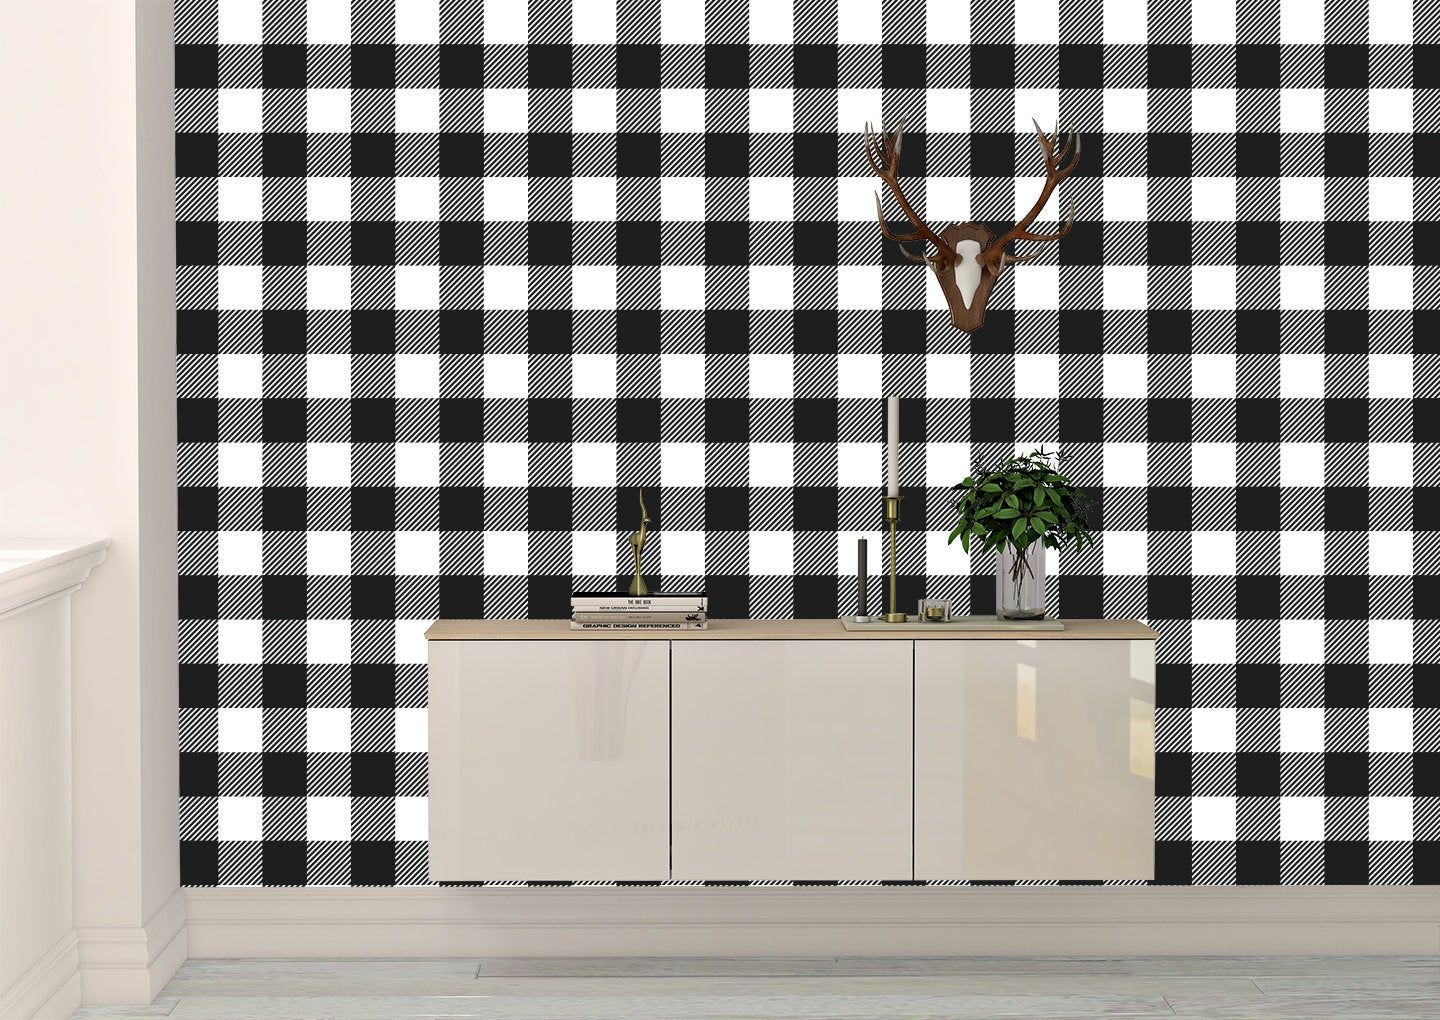 Removable Peel And Stick Wallpaper Black And White Plaid Etsy In 2020 Peel And Stick Wallpaper Vinyl Wallpaper High Quality Vinyl